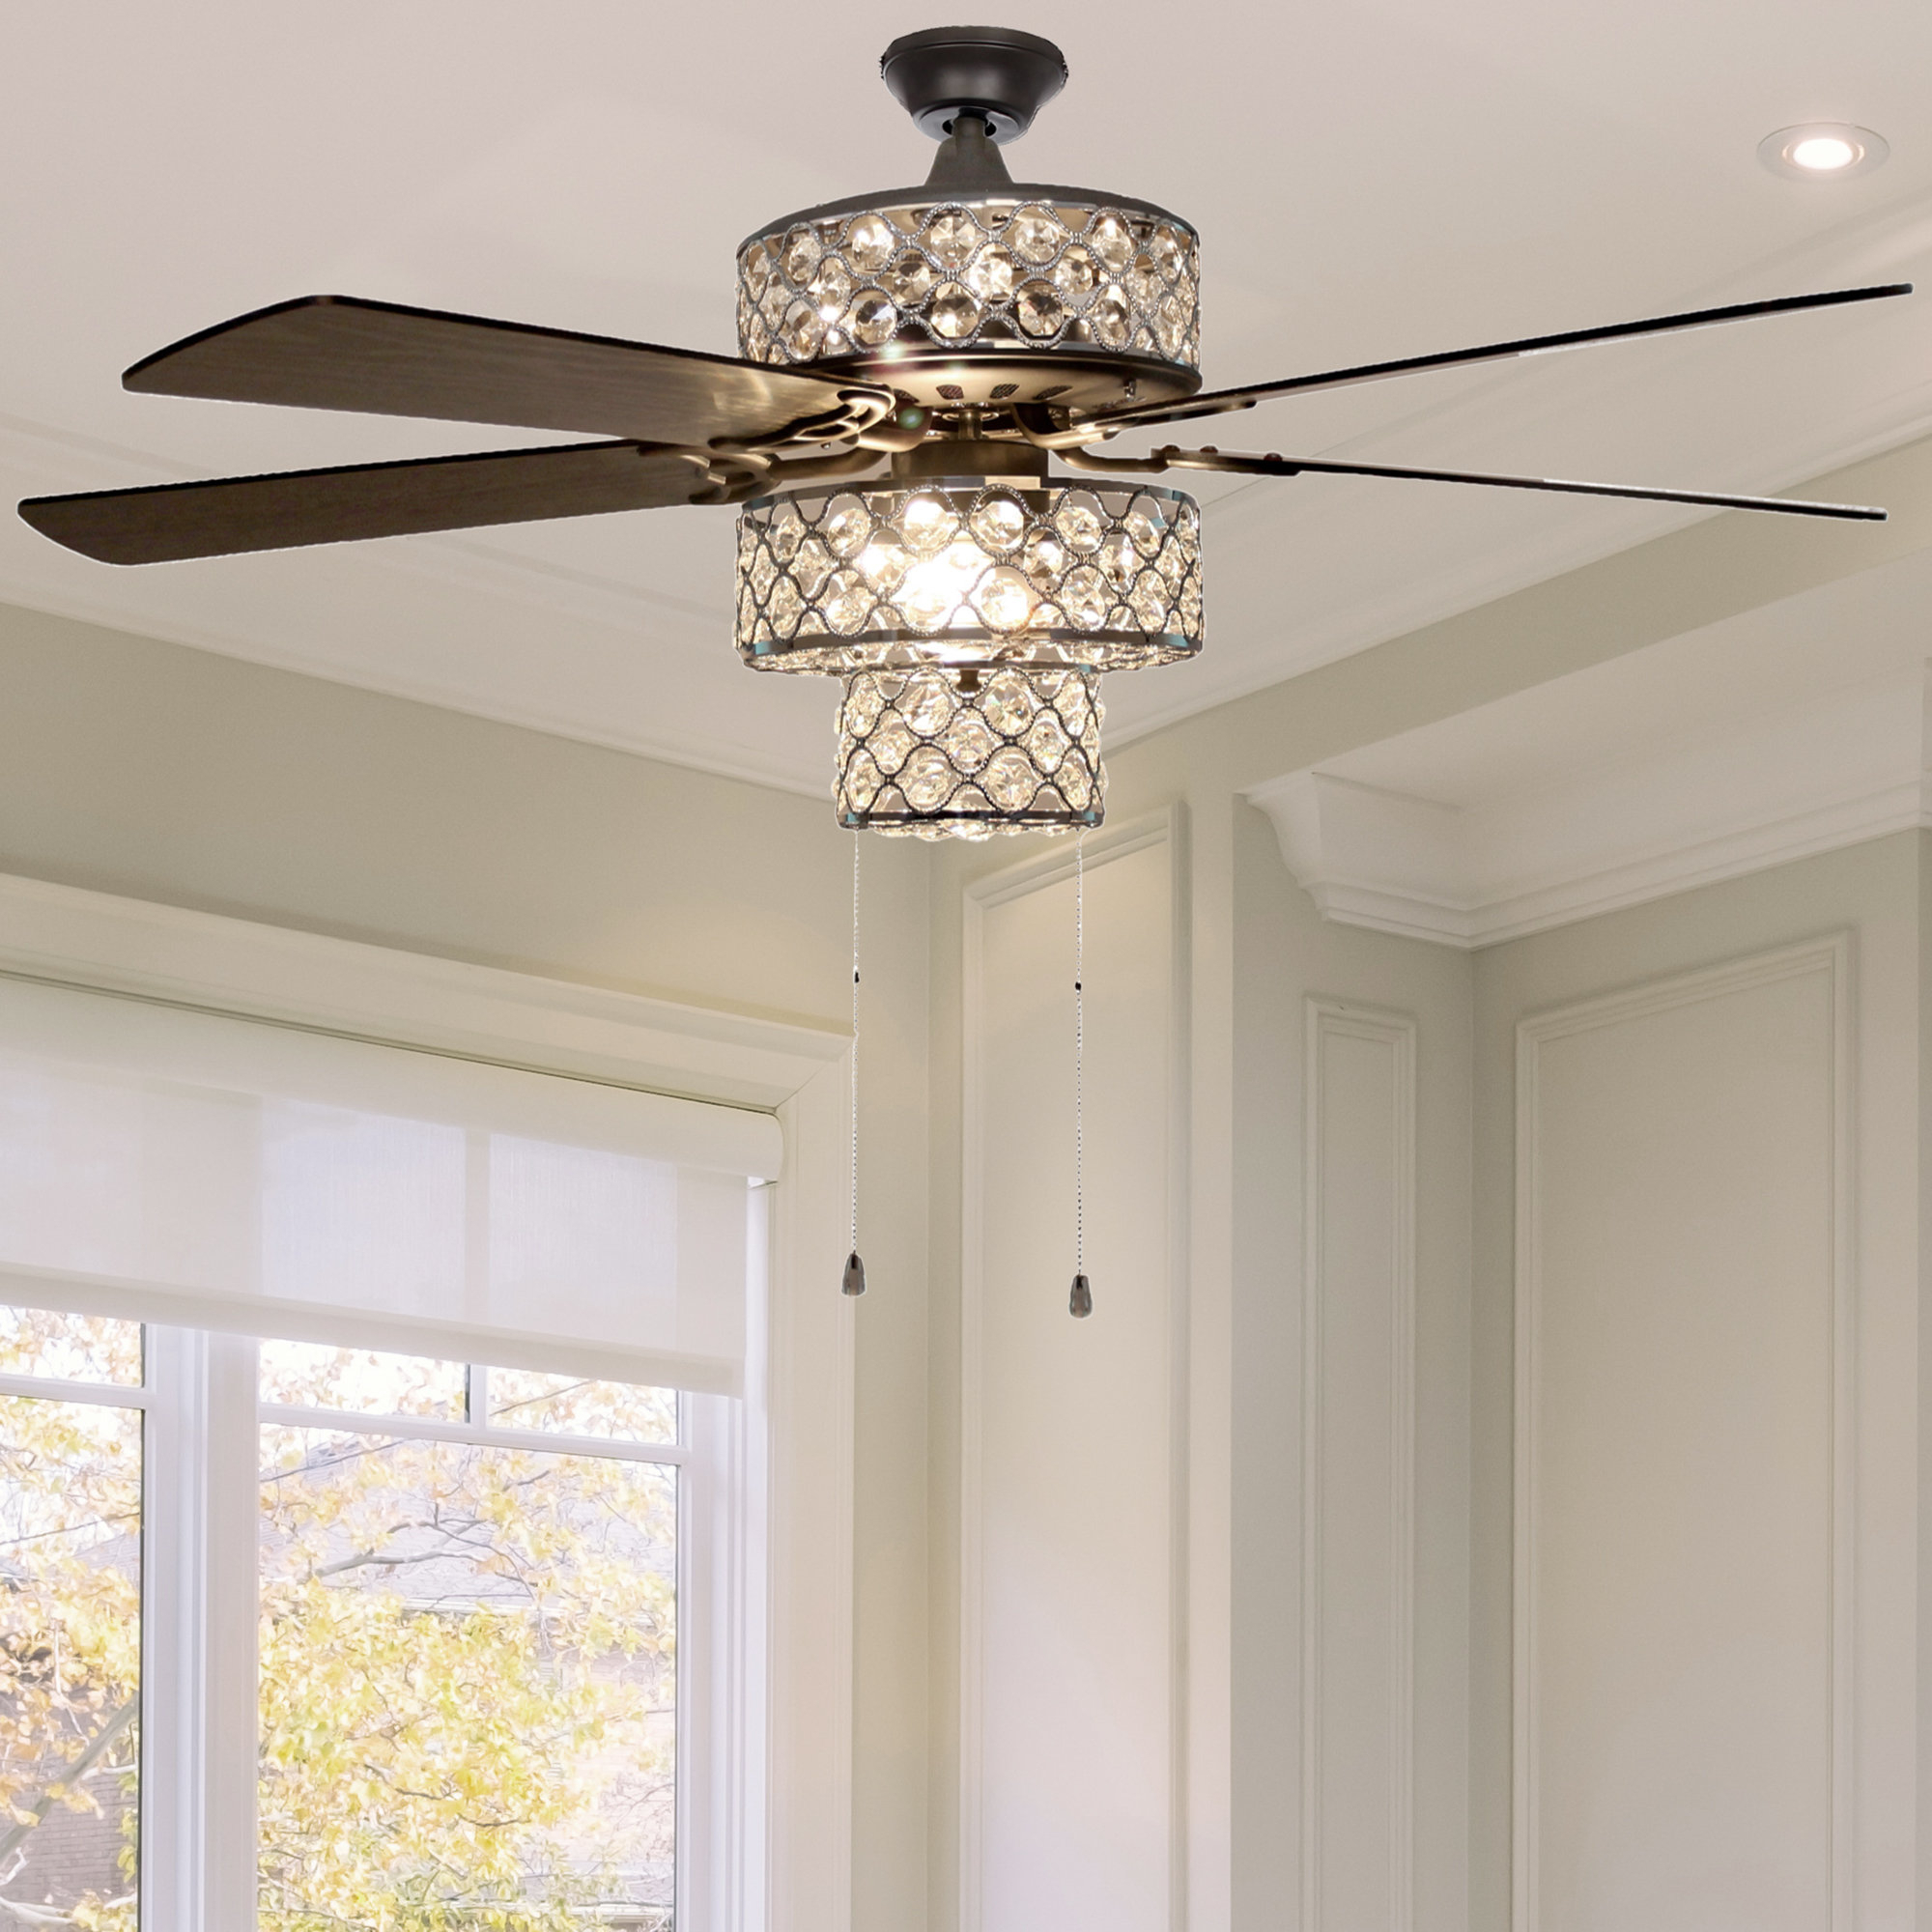 "Njie Caged Crystal 5 Blade Ceiling Fans For Recent 52"" Marleigh Tri Tiered 5 Blade Ceiling Fan With Remote, Light Kit Included (View 2 of 20)"